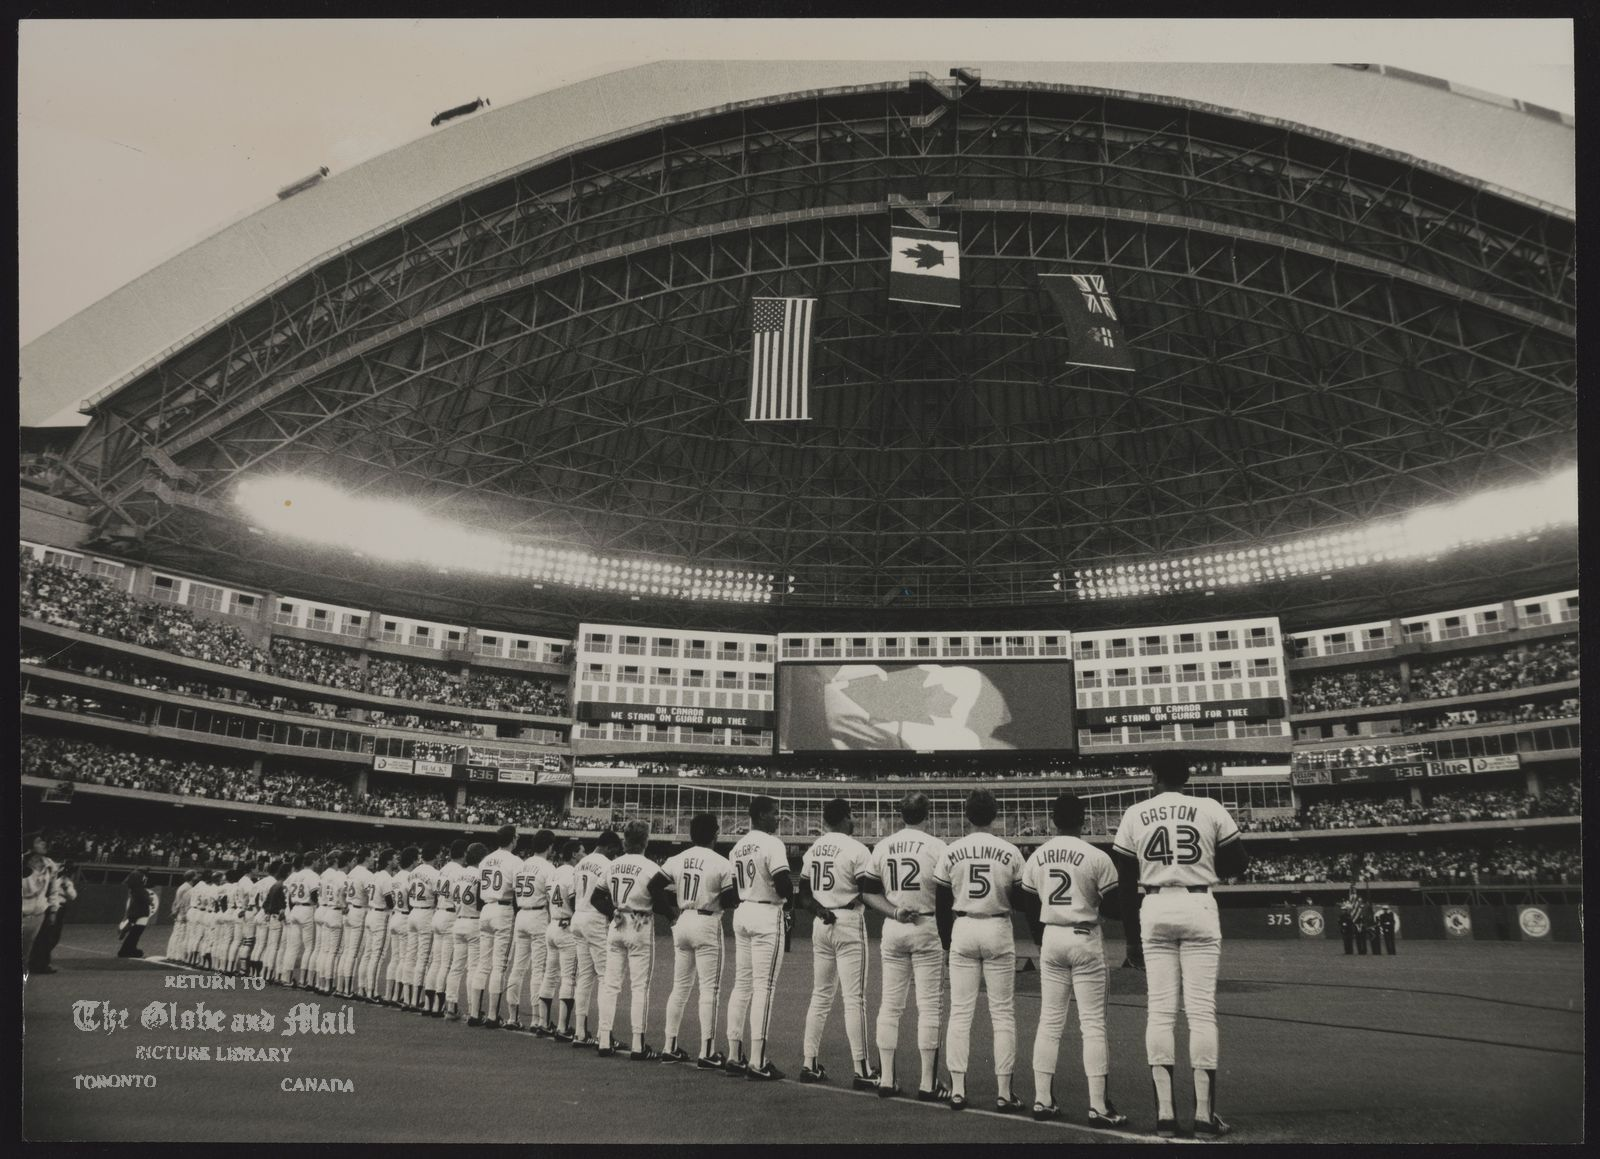 SKYDOME (TORONTO) WITH THE TORONTO BLUE JAYS LINING THE FOUL LINE, THE FLAGS FLAPPING AND THE ROOF ROLLED BACK.